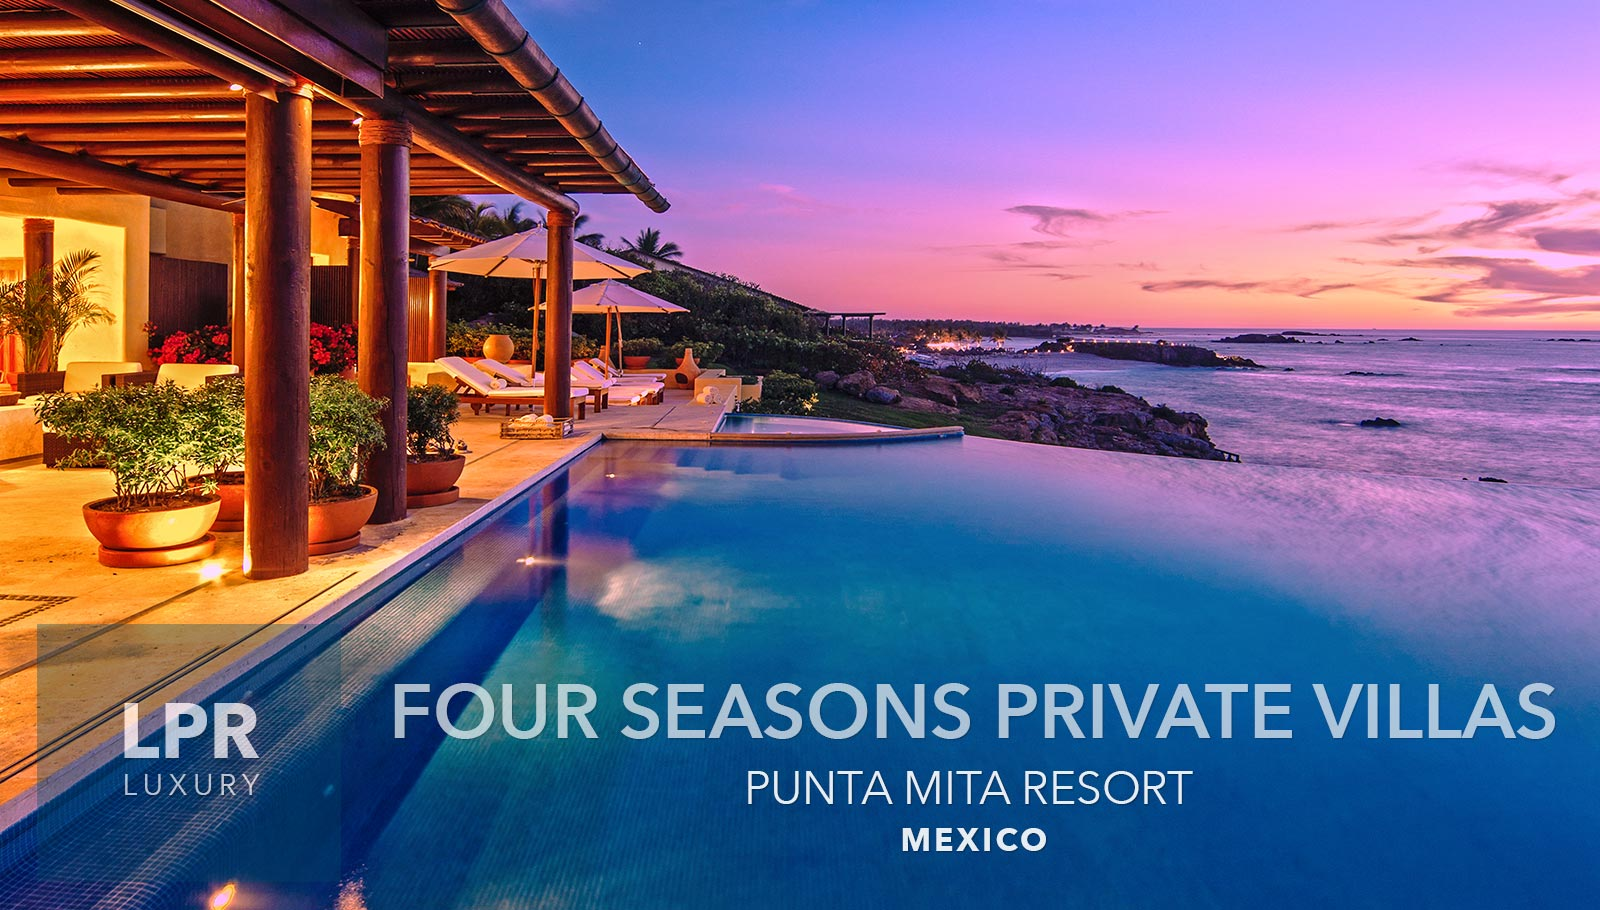 the four seasons private villas luxury resort vacation villas for sale and rent at the